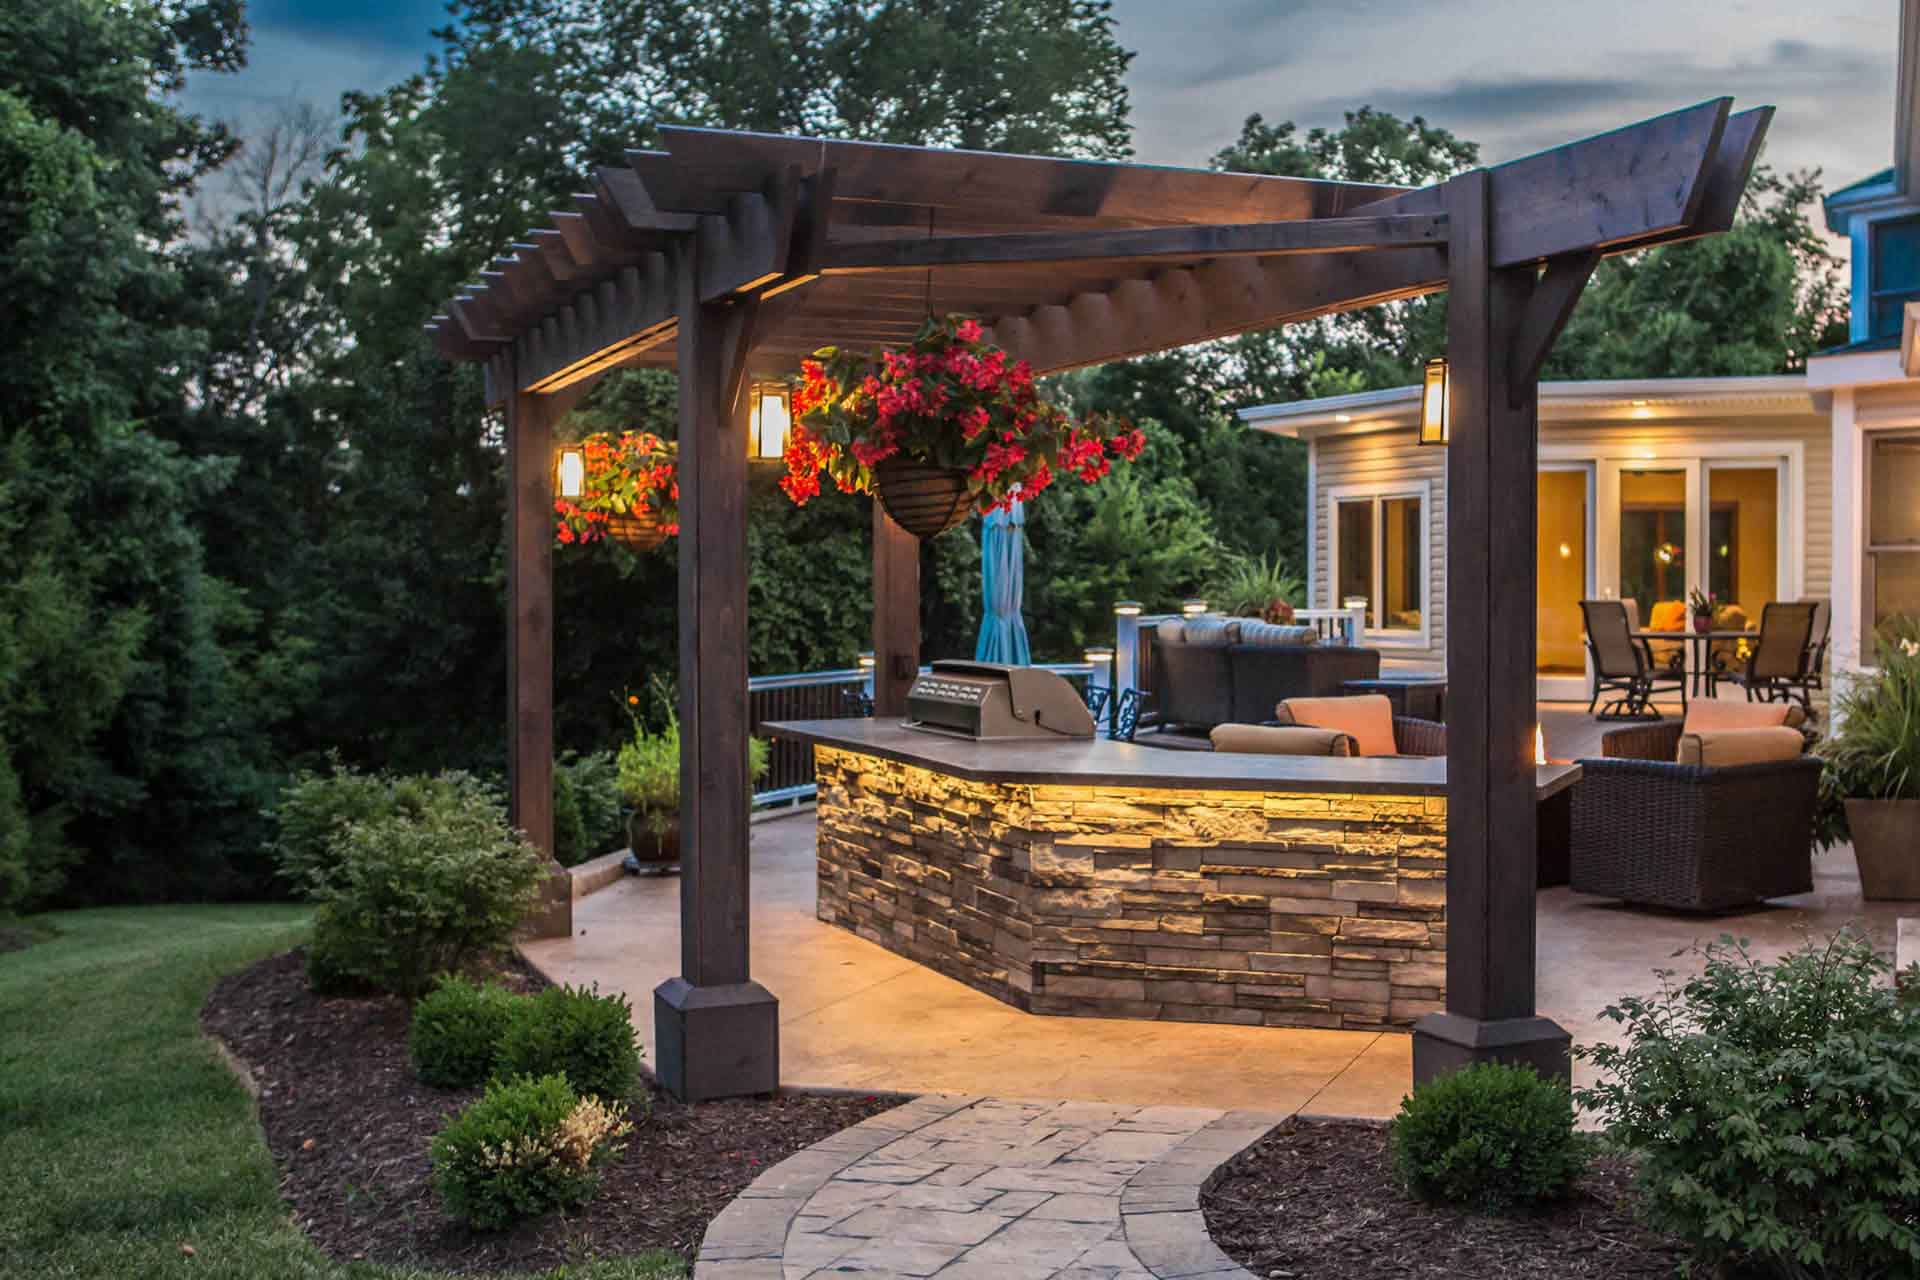 Outdoor Living Remodeling Company   Outdoor Living Design ... on Outdoor Living Company id=11769